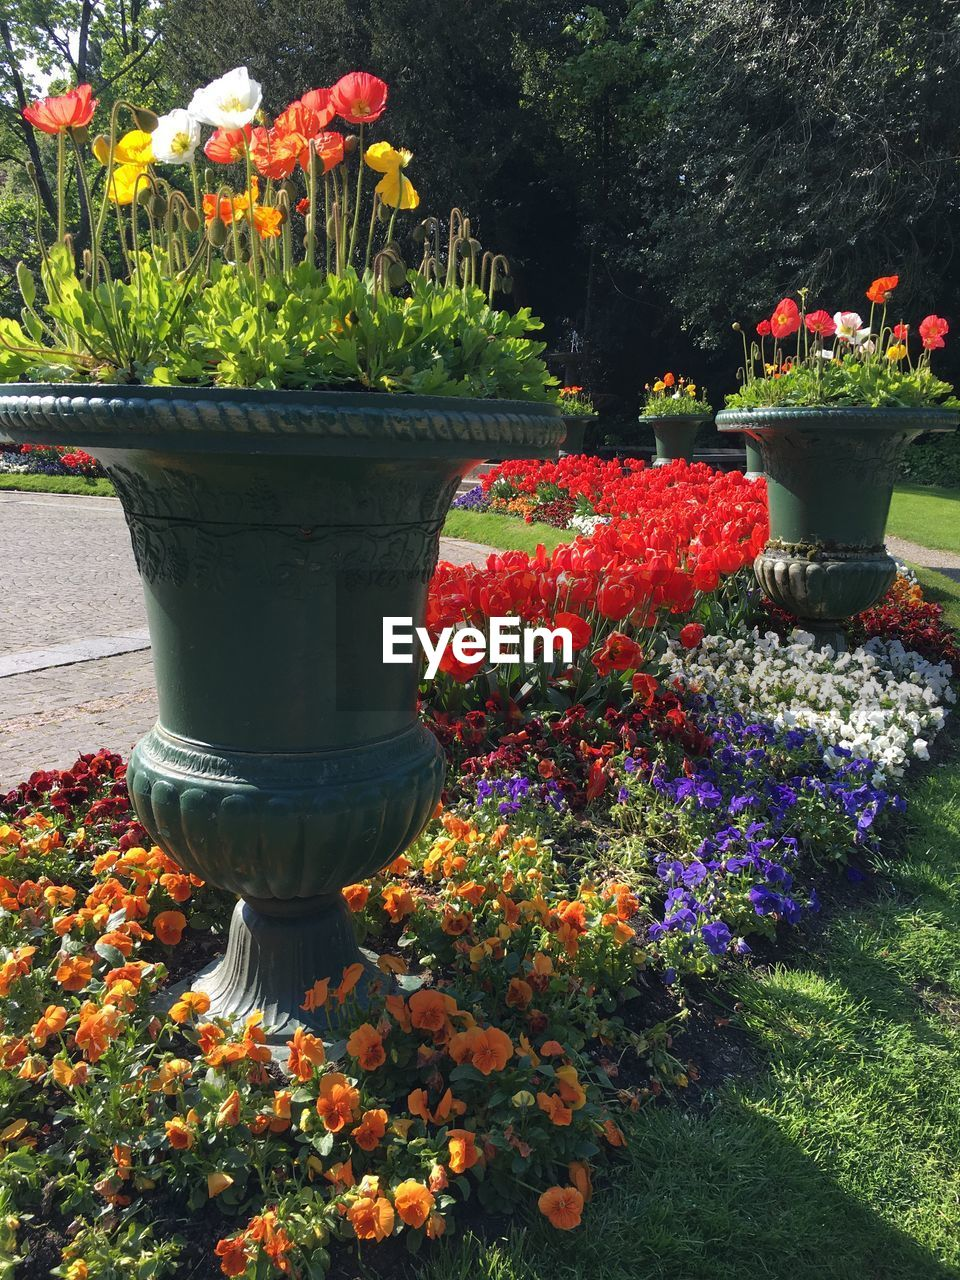 flower, growth, plant, nature, beauty in nature, potted plant, front or back yard, no people, leaf, freshness, petal, flowerbed, fragility, red, tree, outdoors, blooming, day, flower head